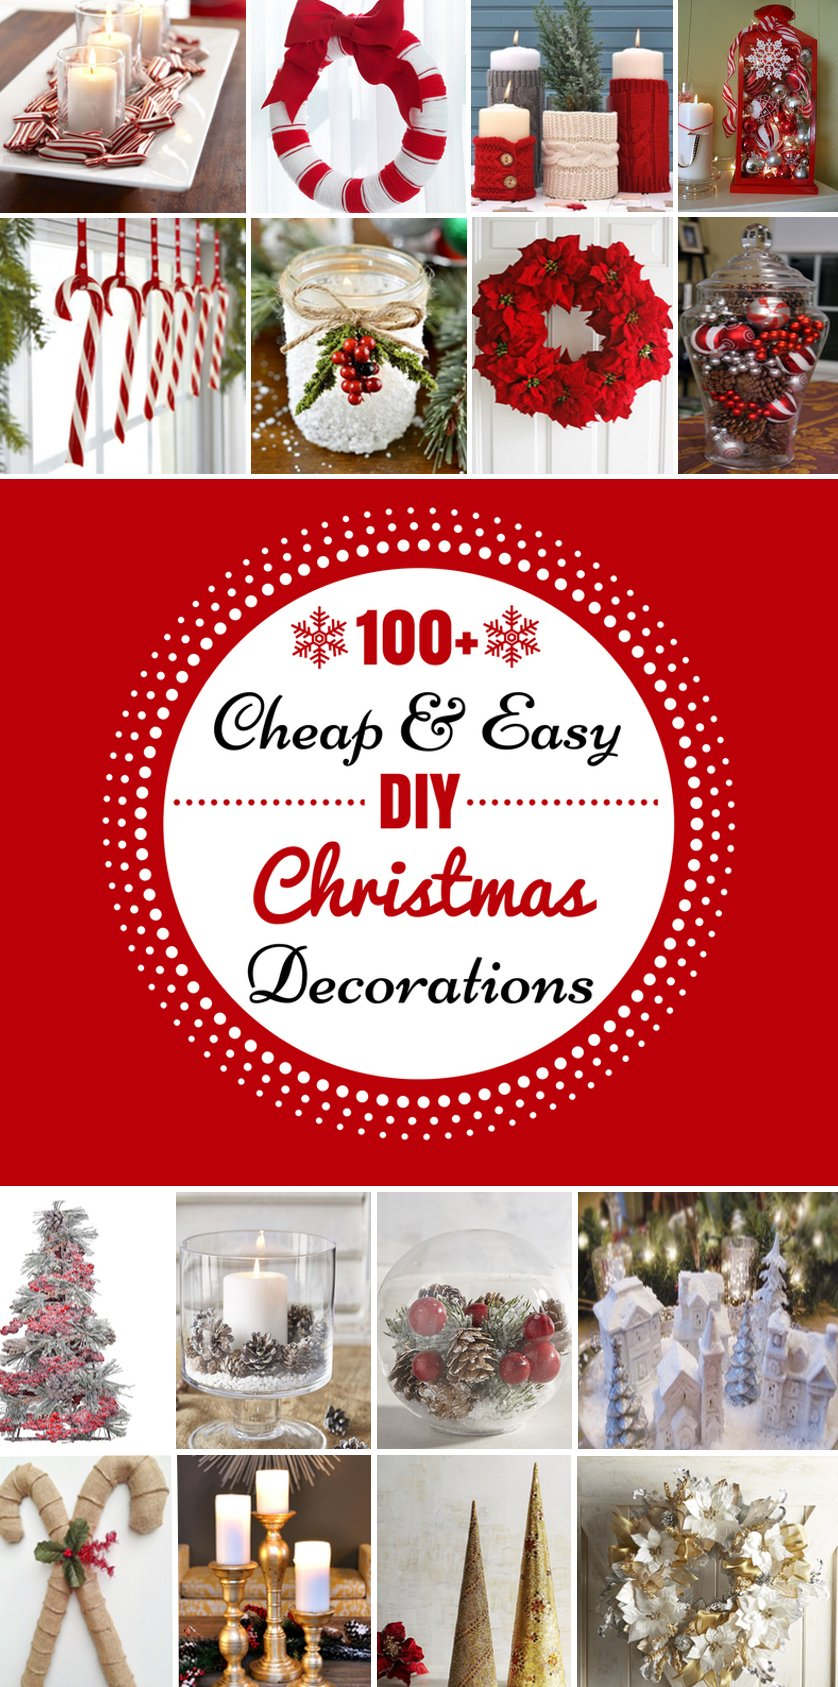 100 cheap easy diy christmas decorations prudent penny. Black Bedroom Furniture Sets. Home Design Ideas